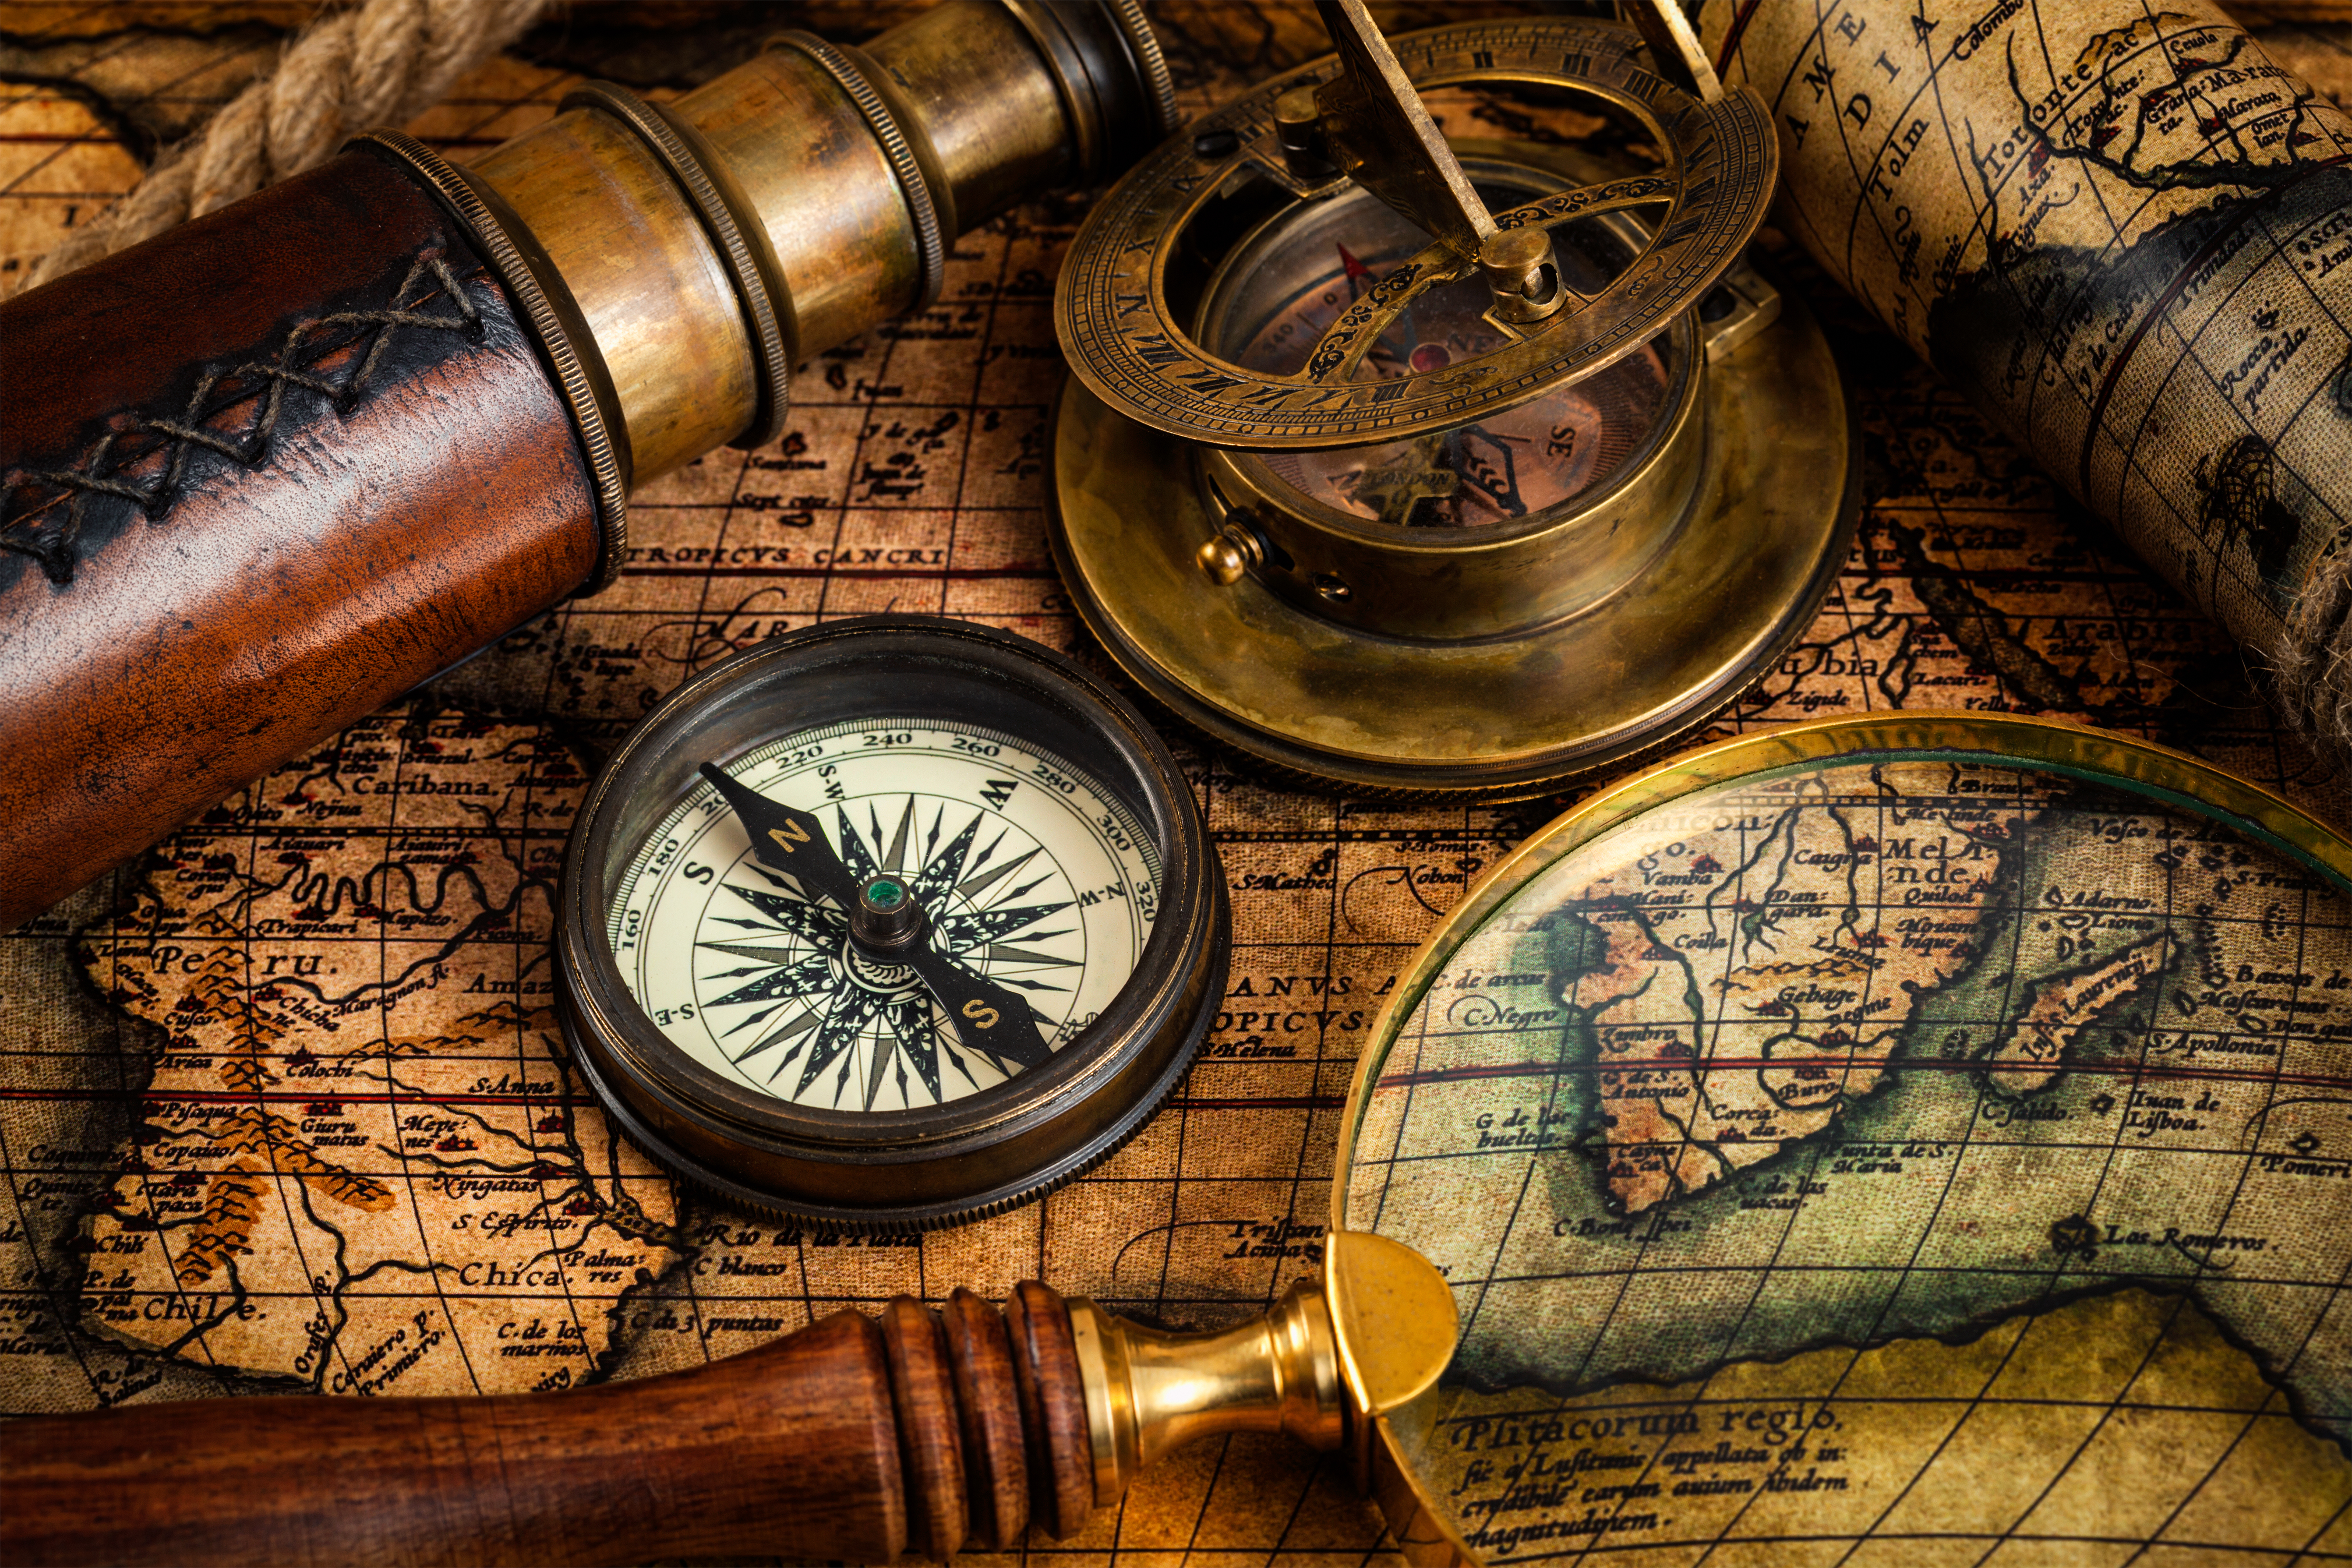 Old vintage compass and travel instruments on ancient map (iStock)